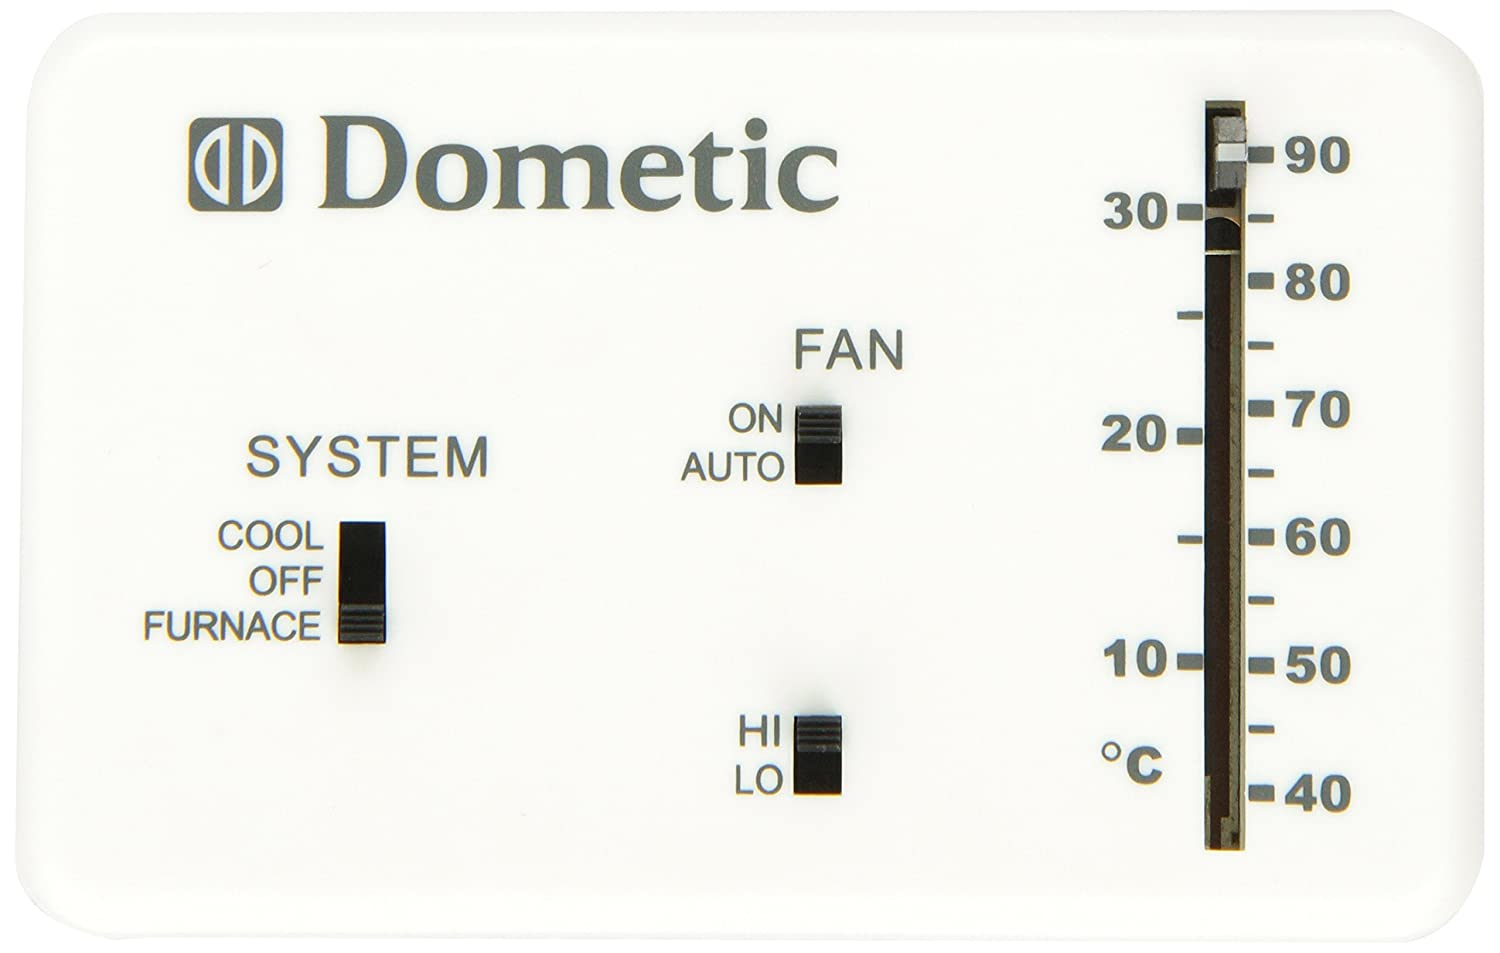 81Jn7vmmuvL._SL1500_ amazon com dometic 3106995 032 heat cool analog thermostat duo therm thermostat 3105058 wiring diagram at bayanpartner.co